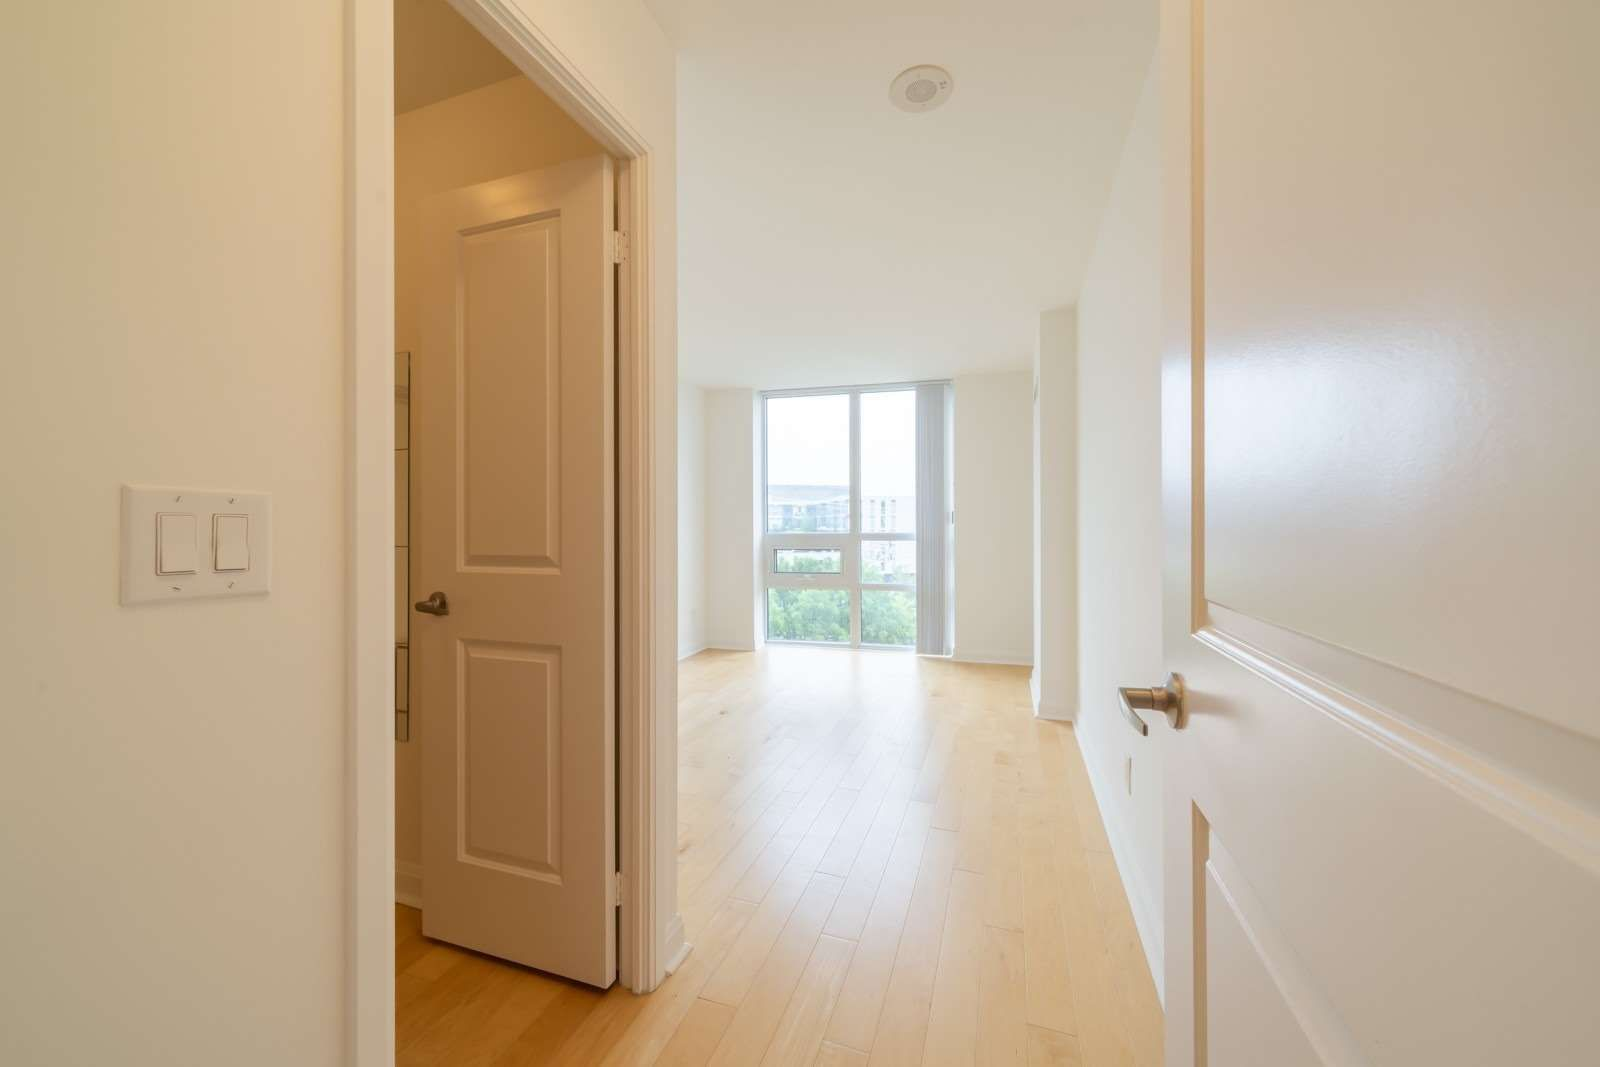 1 Michael Power Pl, unit 406 for rent in Toronto - image #2